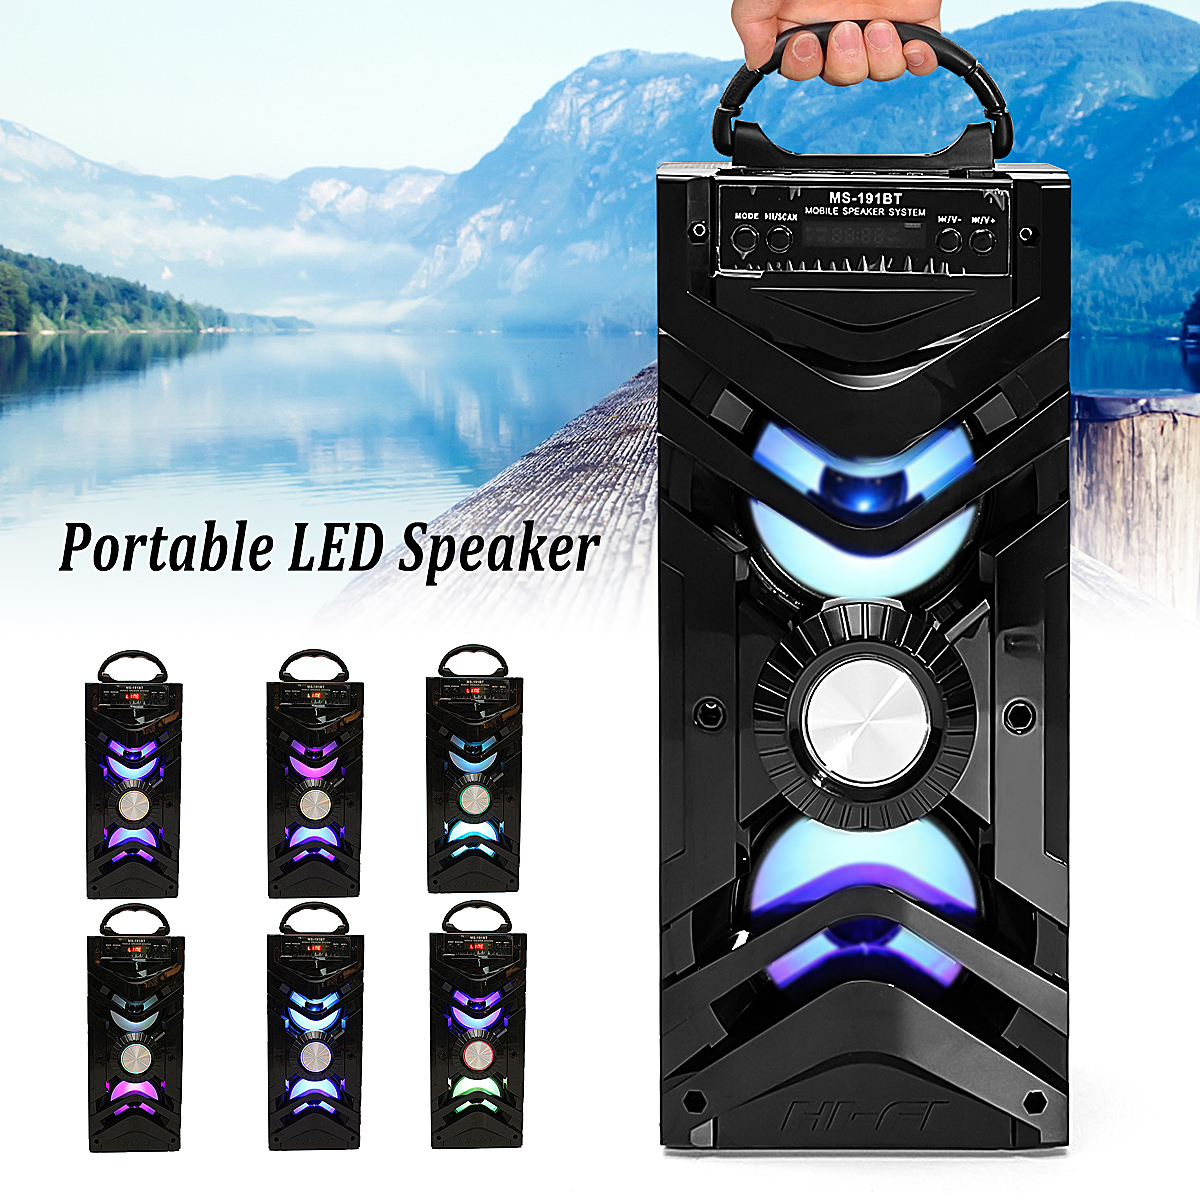 KINCO MS-191BT LED Wireless Bluetooth Speaker 10W Portable Stereo Outdoor Subwoofer Bass Speaker Loudspeaker TF/USB/FM radio/AUX kinco portable outdoor sports 15w wireless bluetooth speaker bass subwoofer 2000mah hifi stereo loundspeaker radio fm tf usb aux